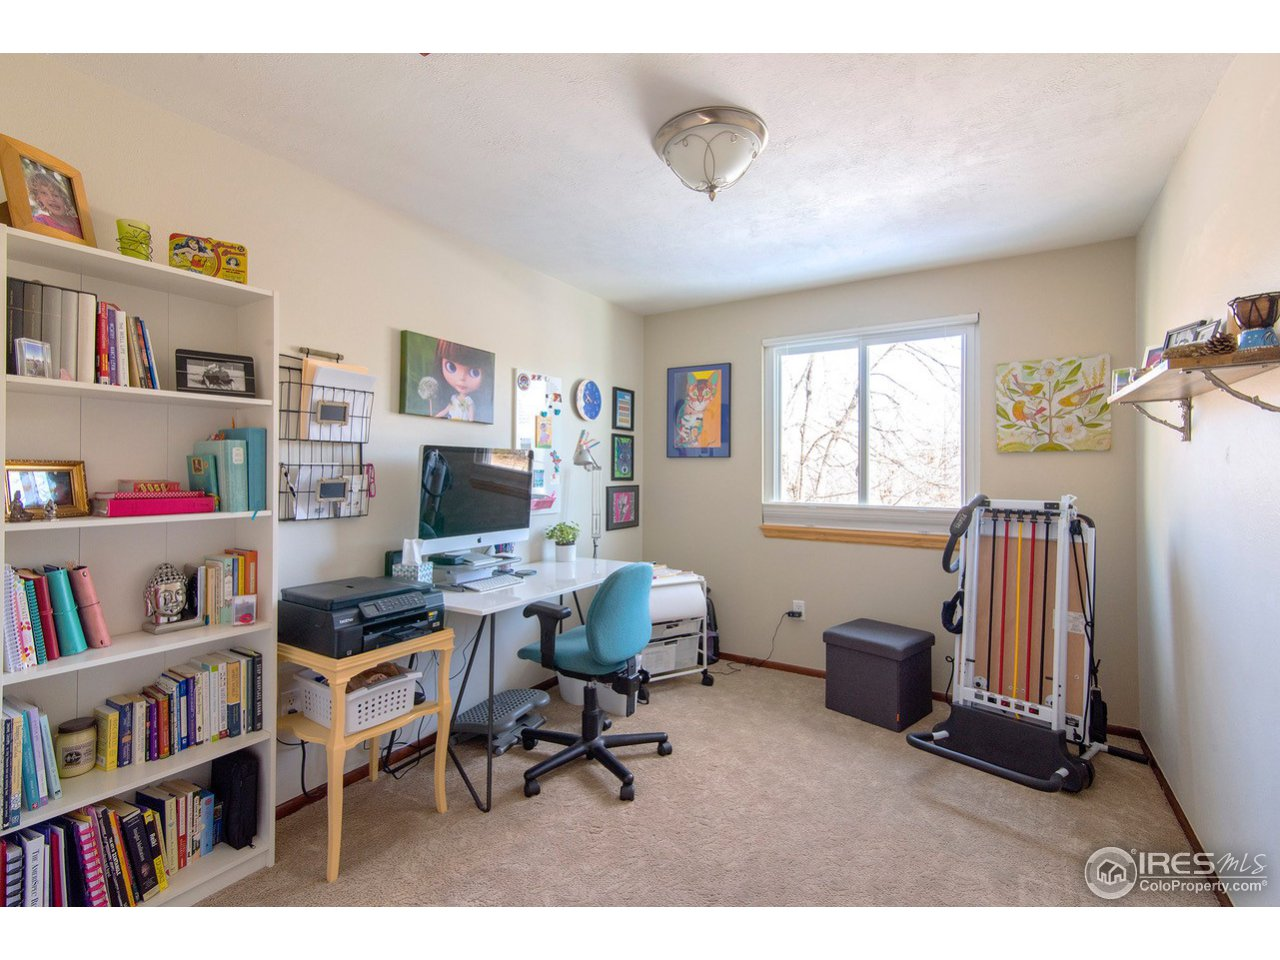 upper bedroom/office